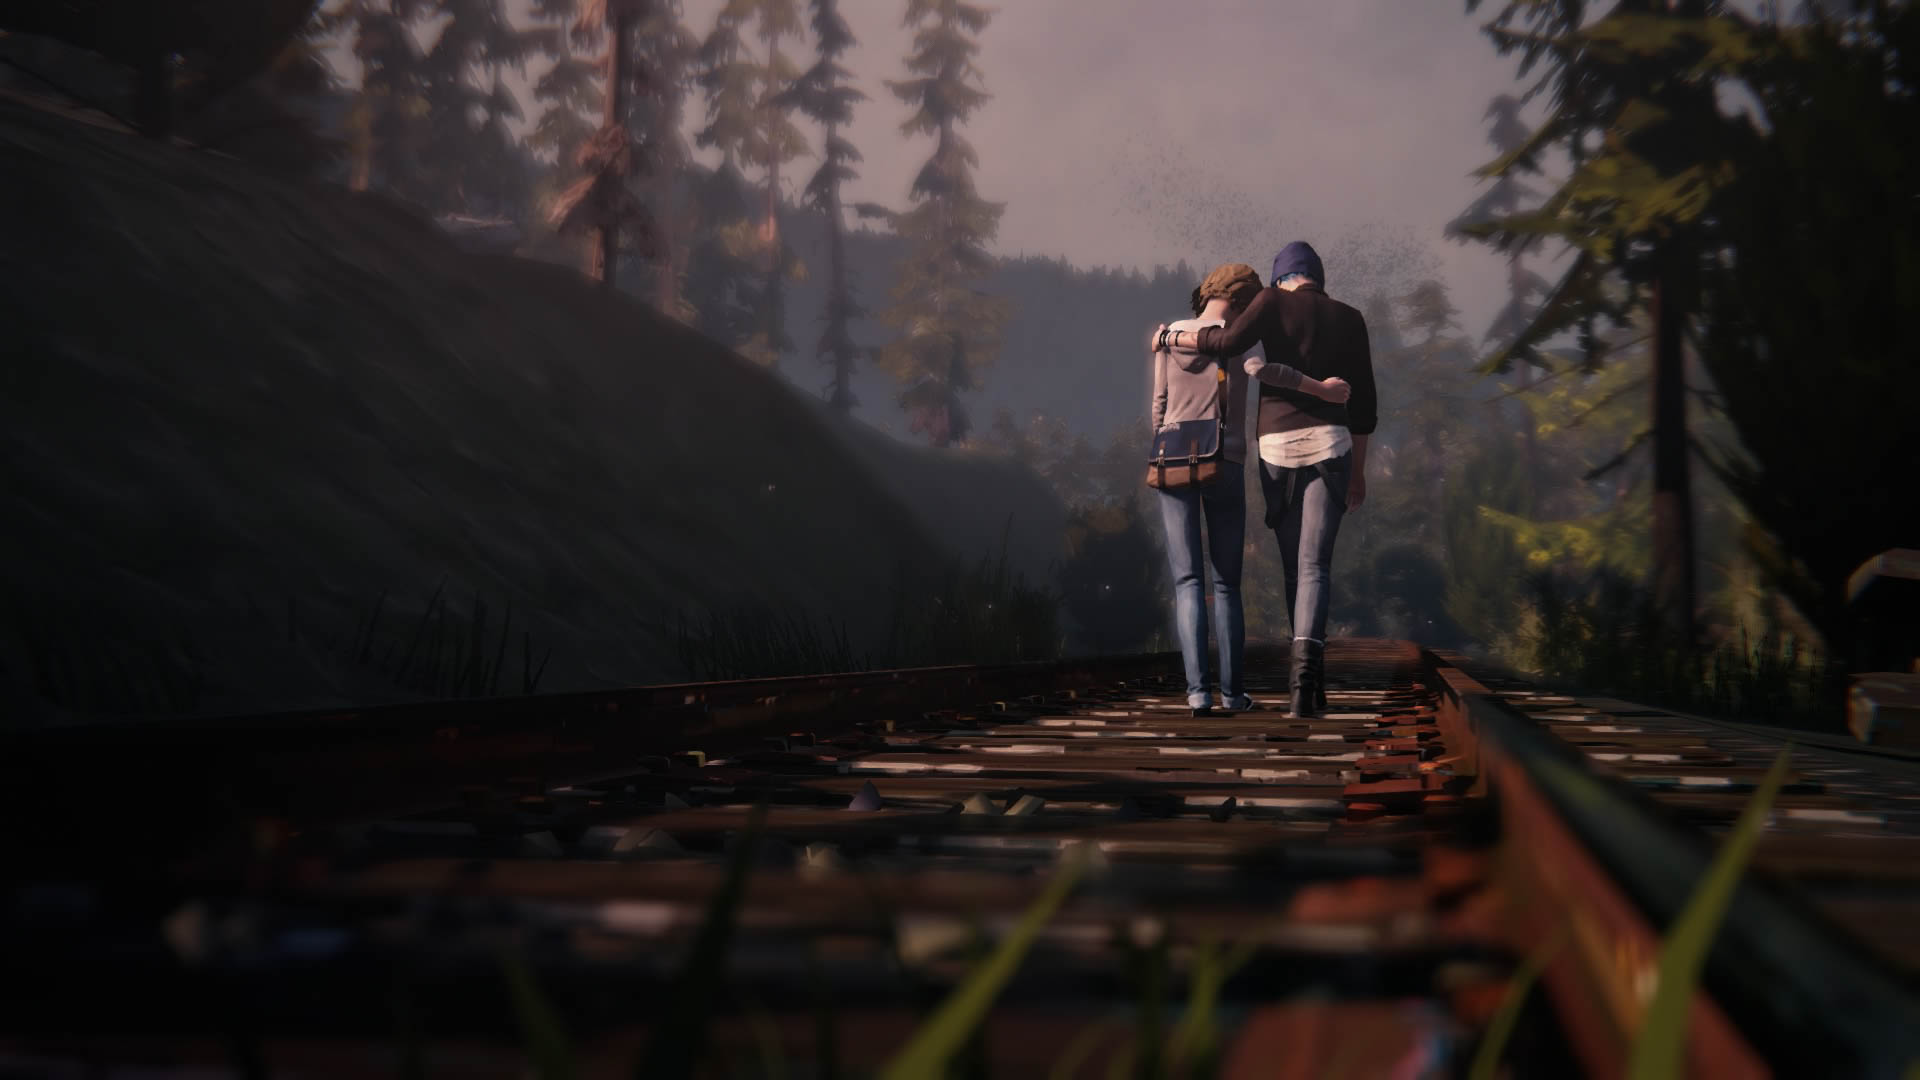 Wallpaper Iphone 3d Touch Life Is Strange Video Game Amazing Hd Wallpapers